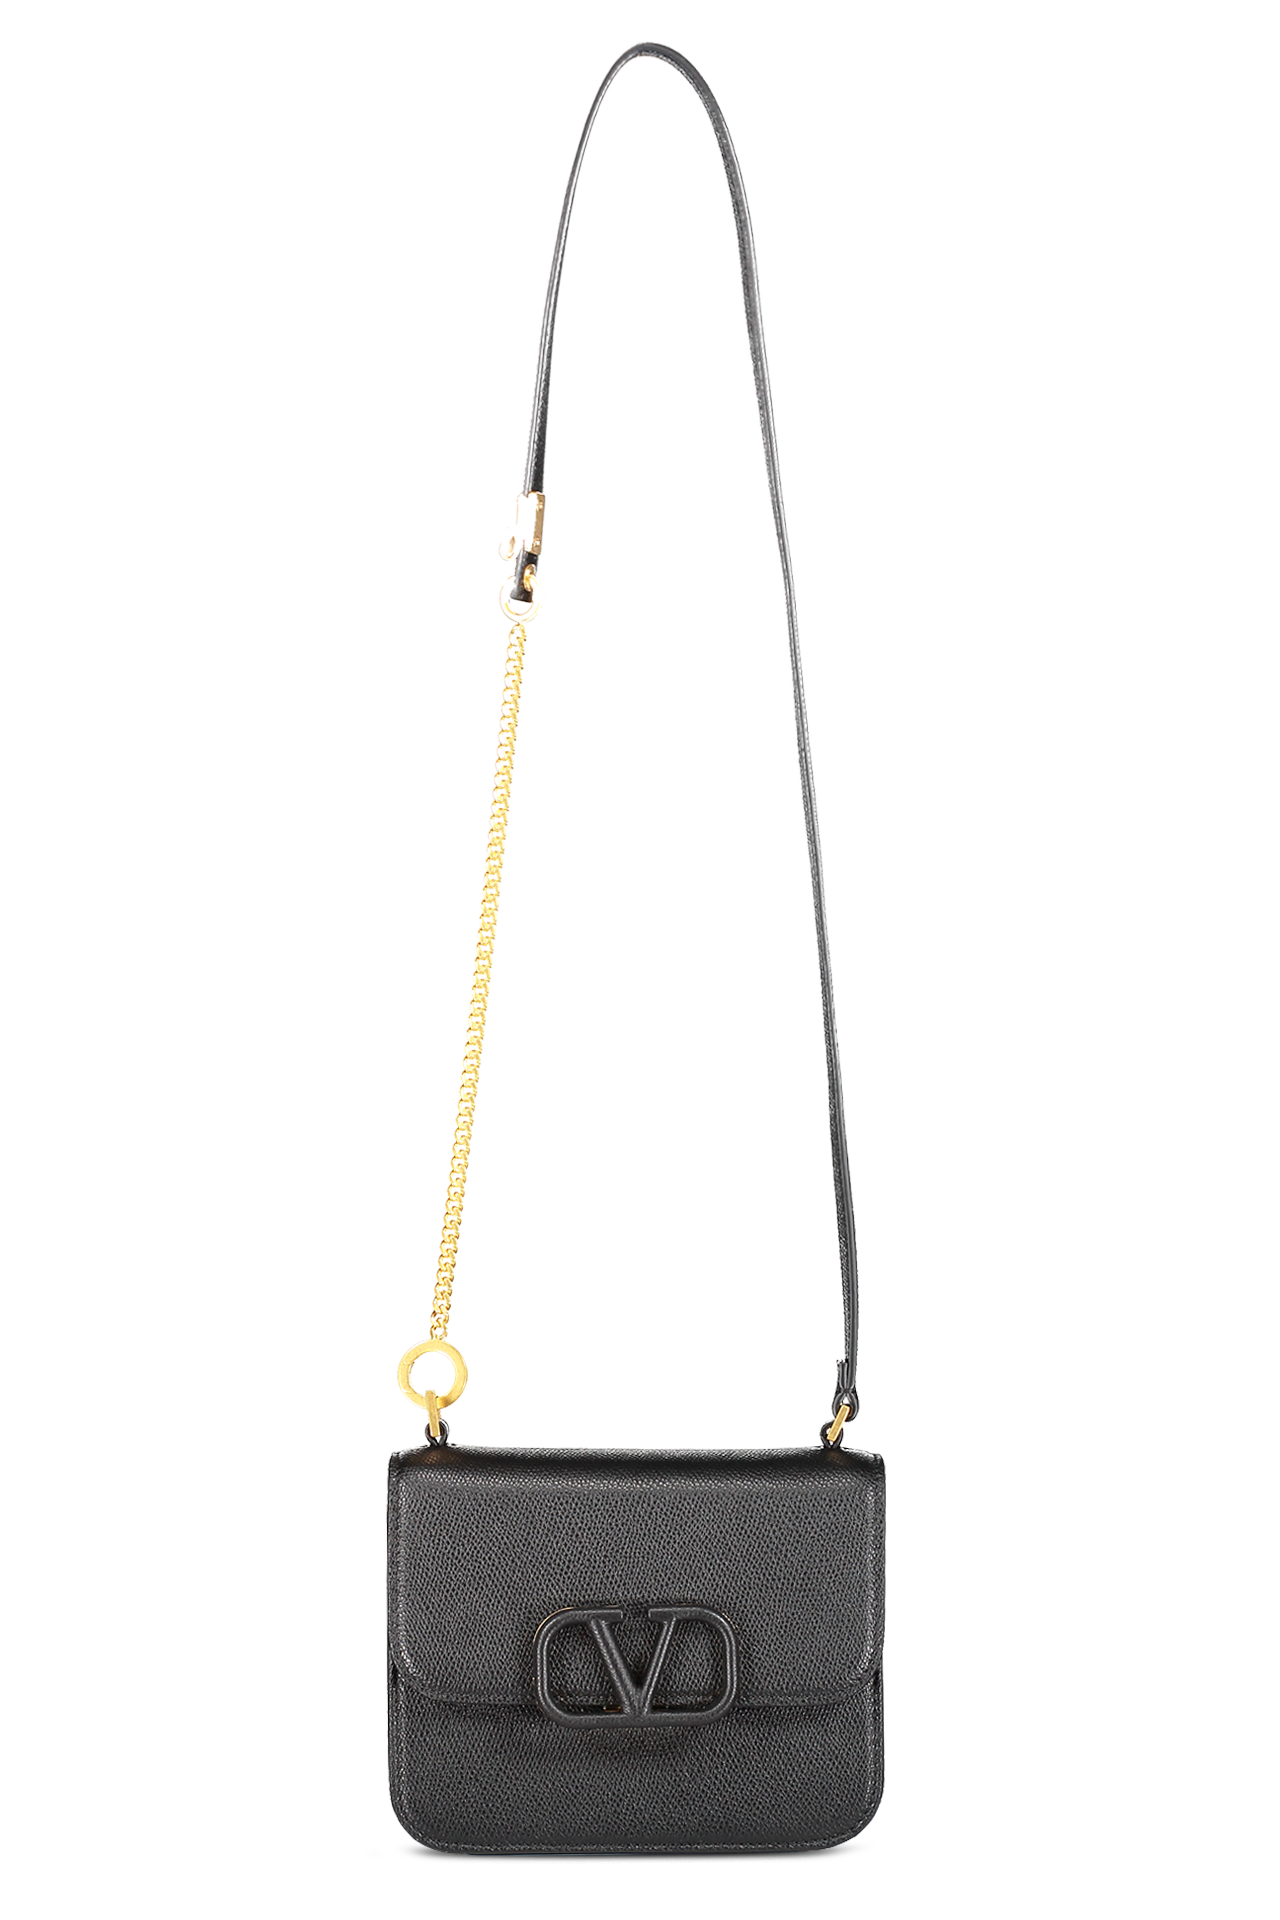 Side view with strap detail image of Valentino Vsling Small Shoulder Bag Nero